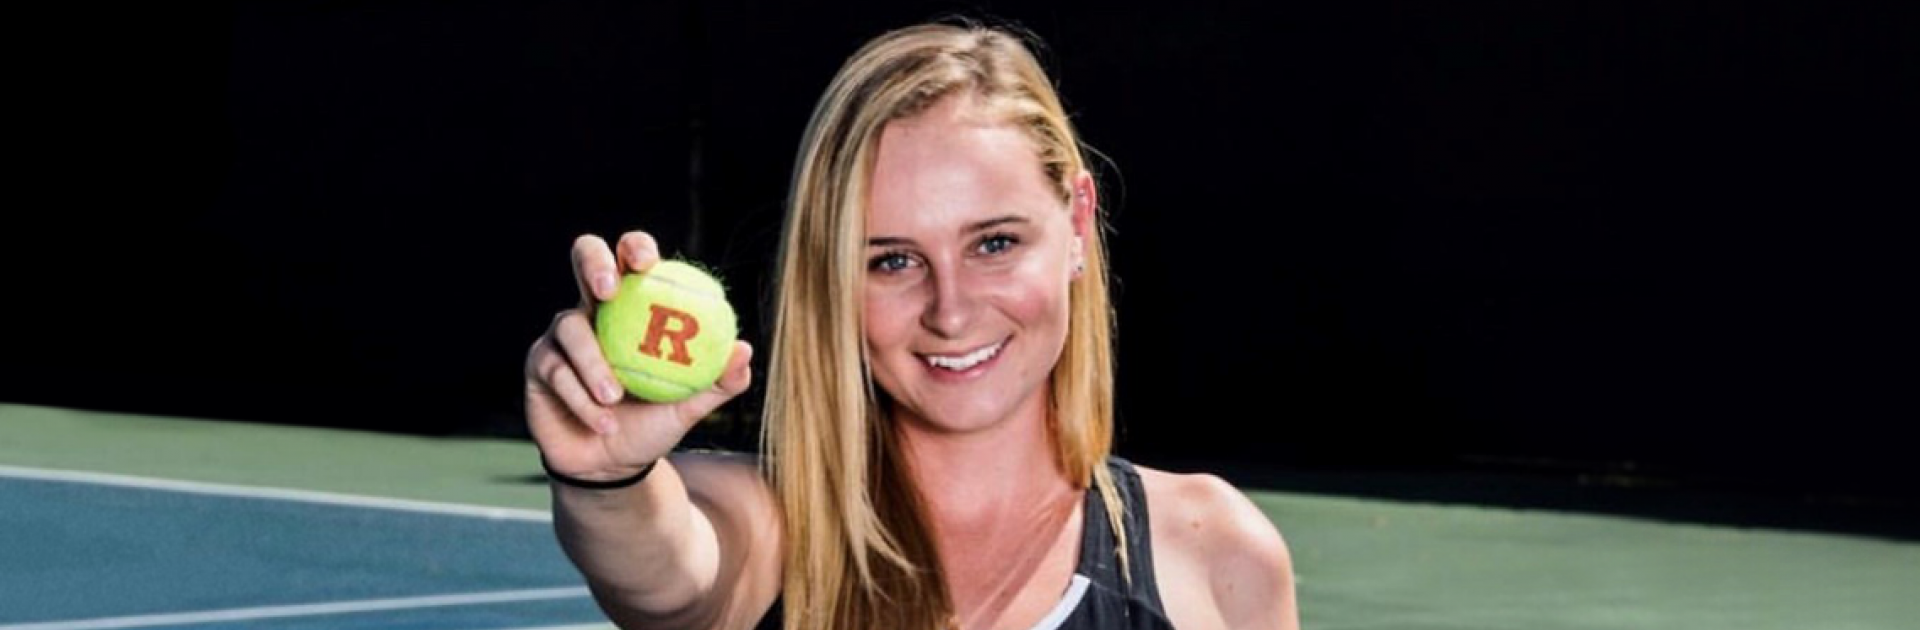 Chloe Lee holds out a tennis ball to the reader